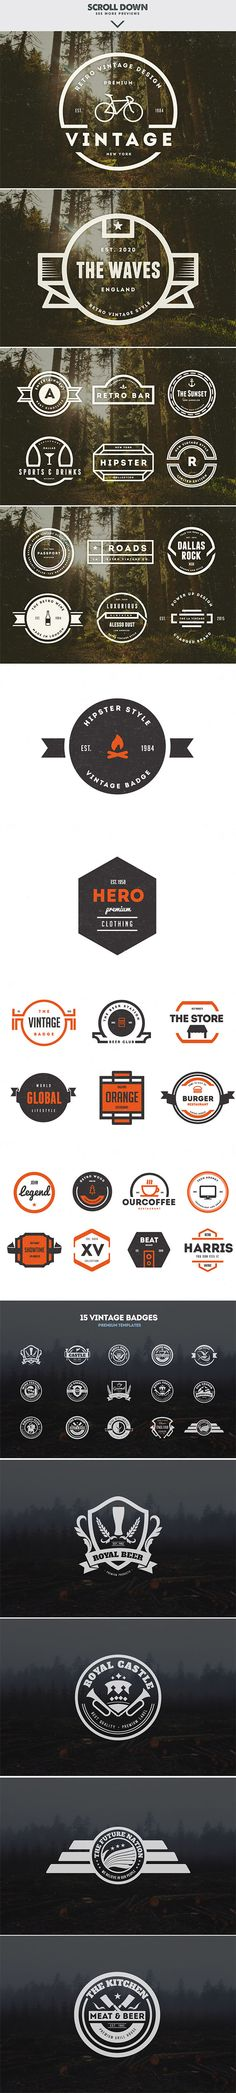 900+ Amazing Logos Bundle Available in .AI & .PSD - 42